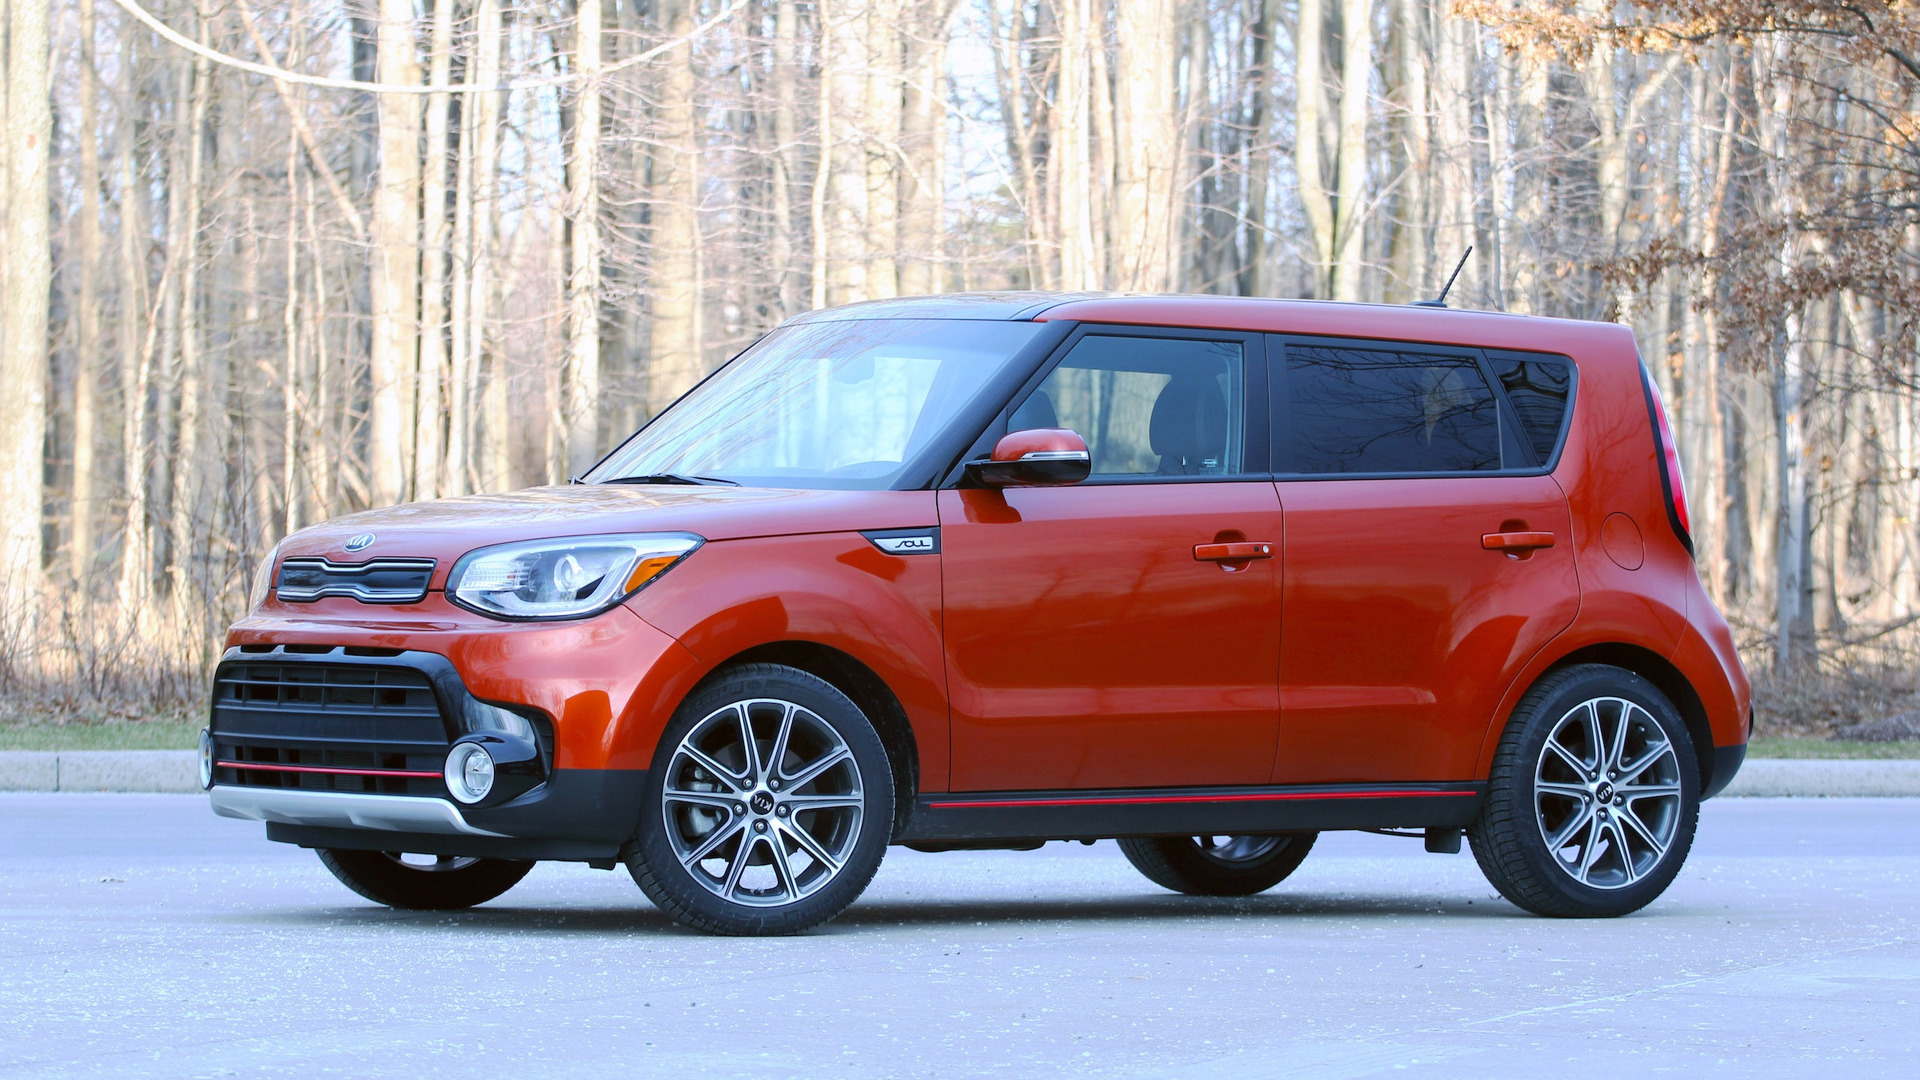 in sale lot view salvage sc kia on soul auctions carfinder cert left bbfe copart blue title online auto greer of en